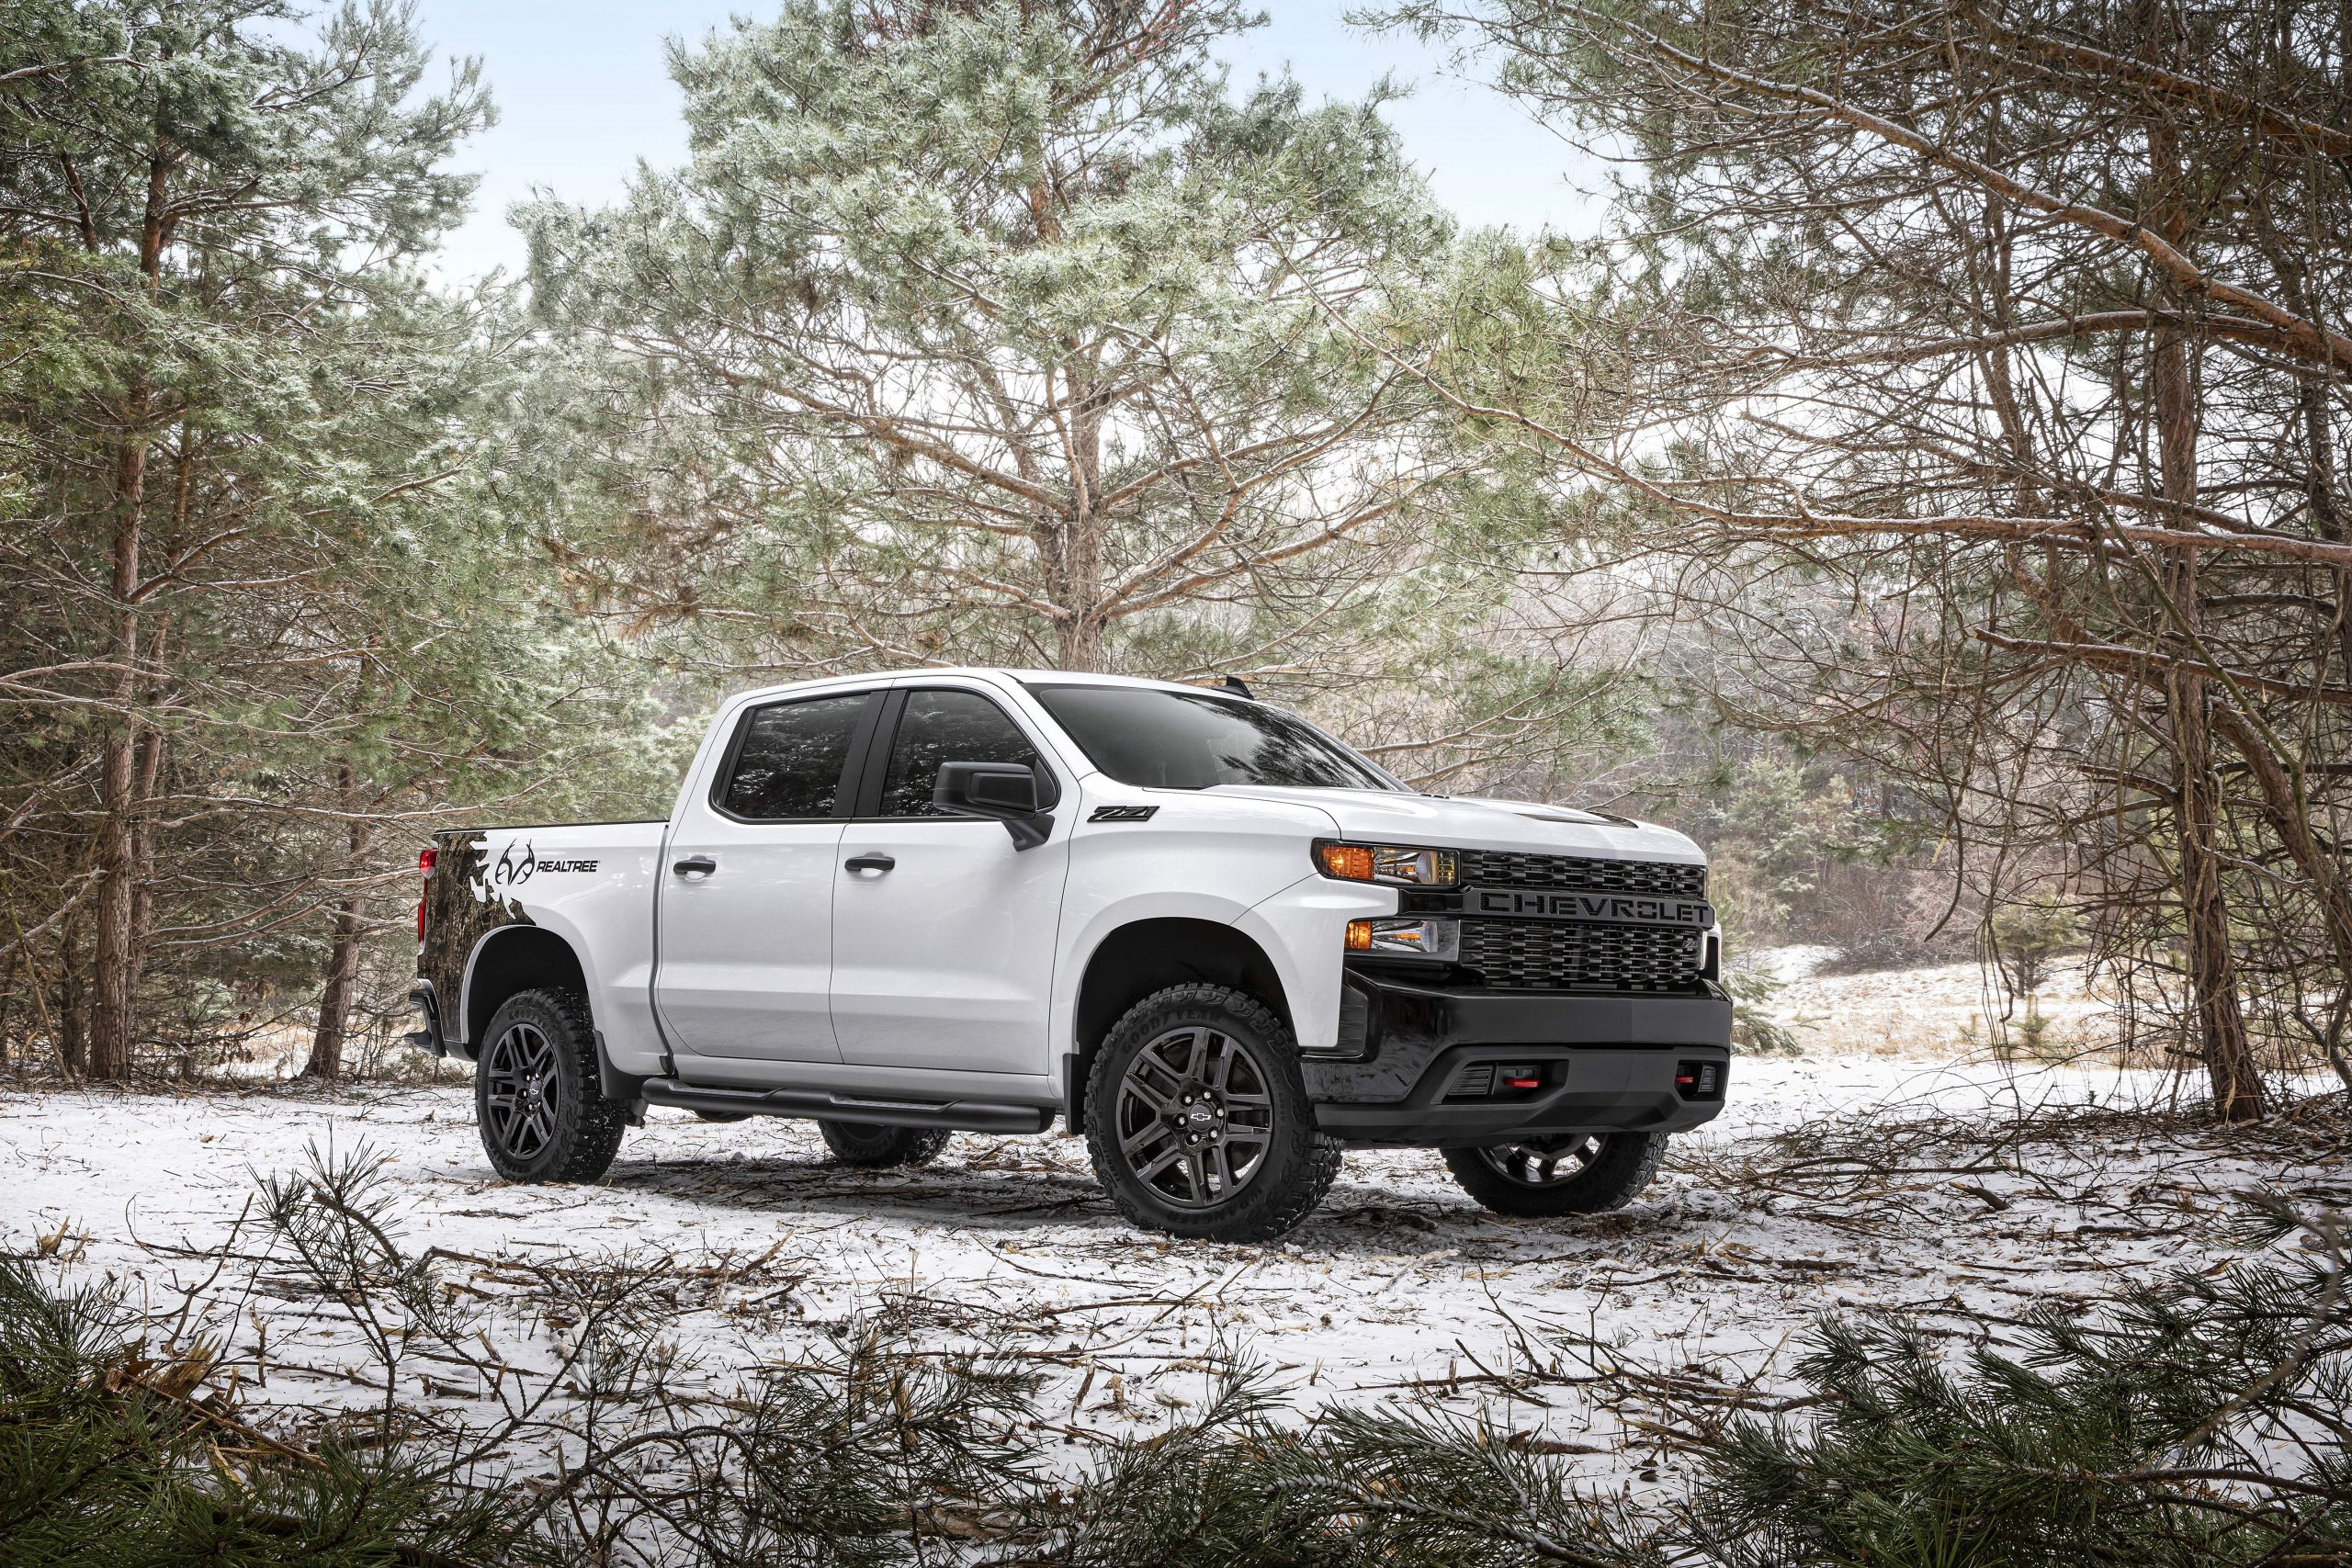 New Chevrolet Silverado Realtree Edition Answers Call Of The 2021 Chevy Silverado Z71 Owners Manual, Price, New